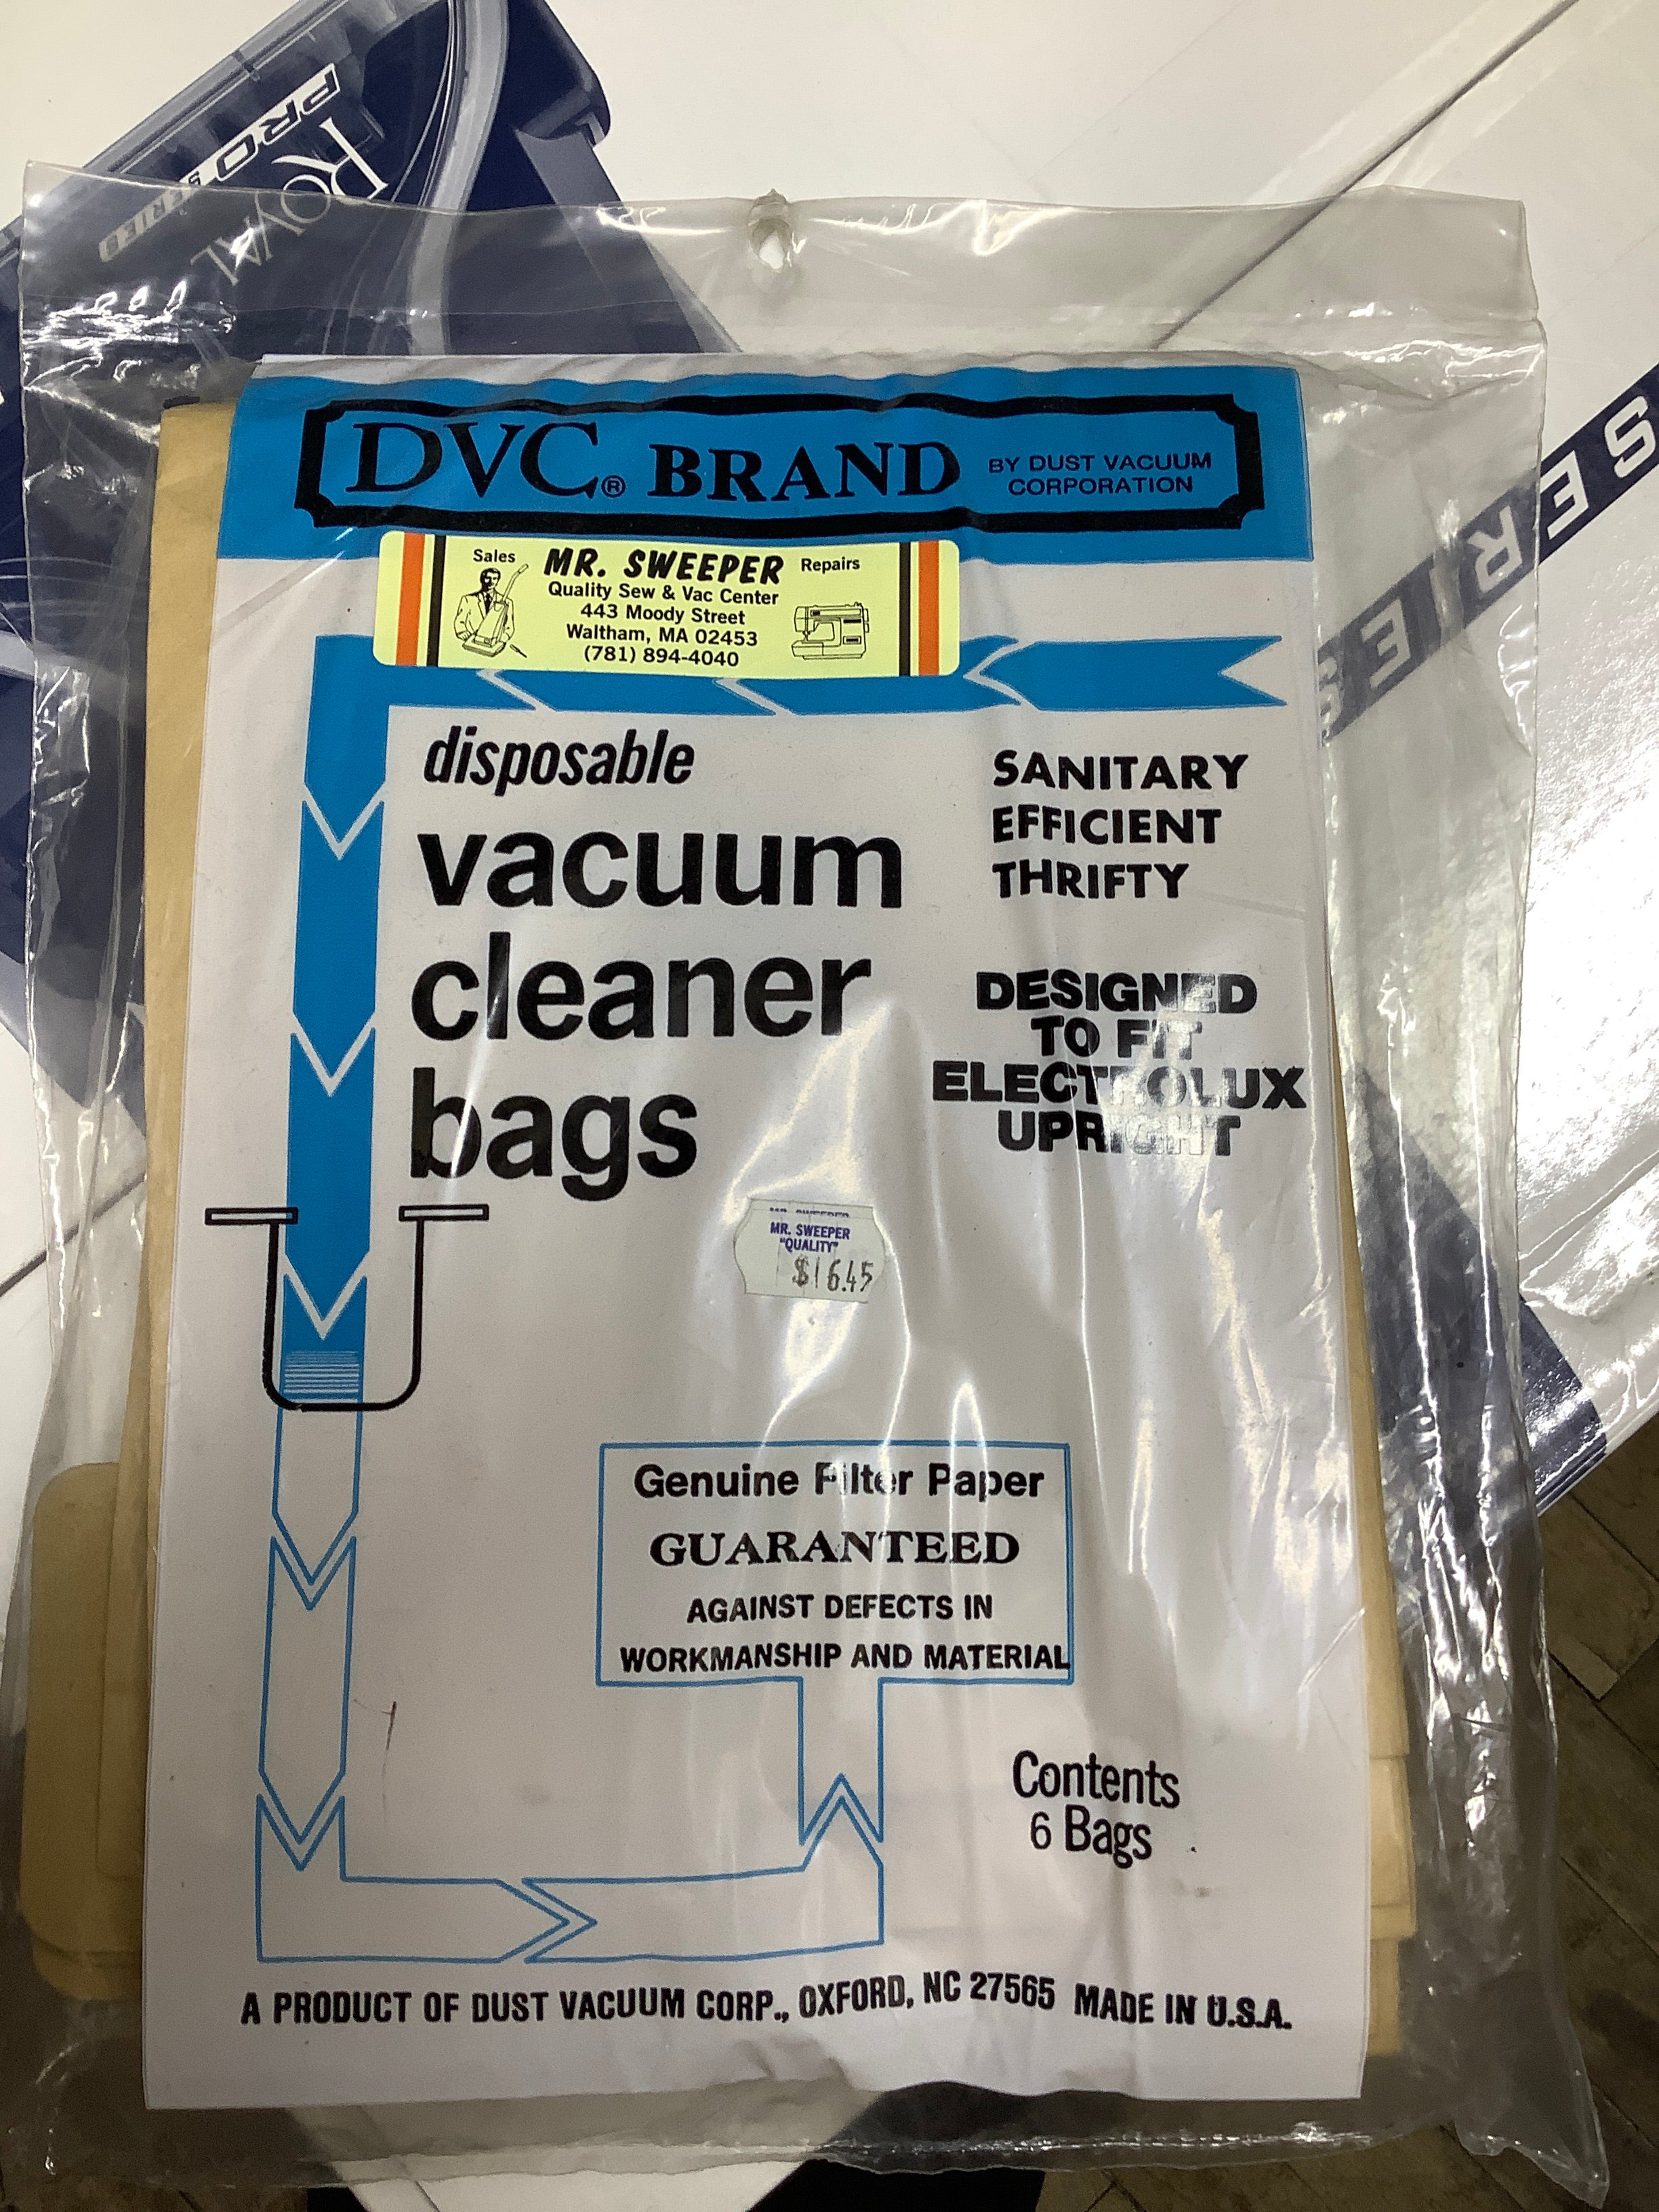 DVC Brand designed to fit Electrolux upright 6 bags